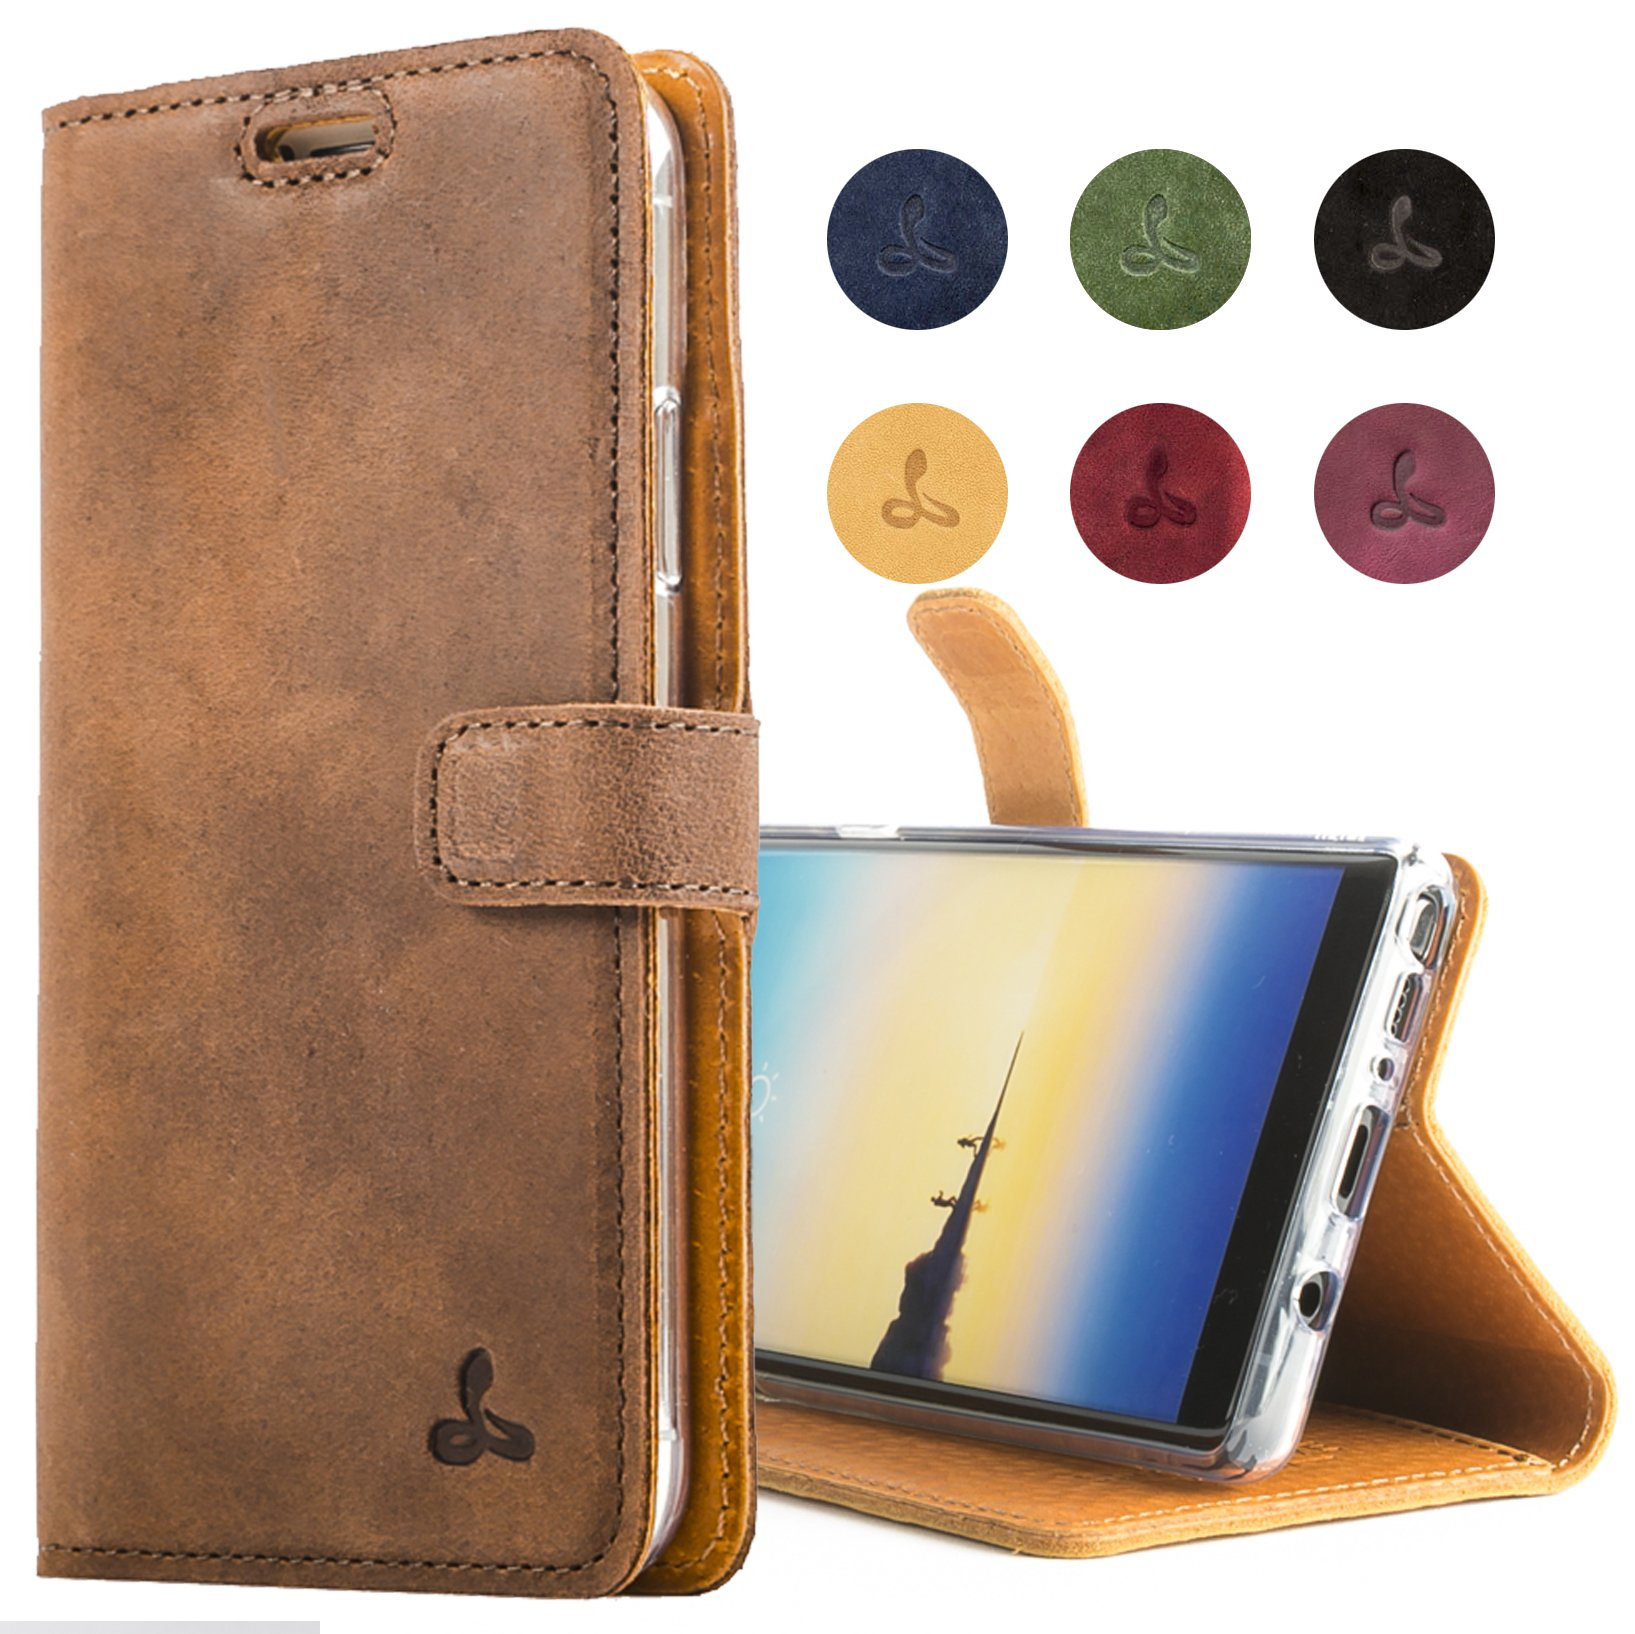 Samsung Galaxy Note 8 Case, Snakehive Genuine Leather Wallet with Viewing Stand and Card Slots, Flip Cover Gift Boxed and Handmade in Europe by Snakehive for Samsung Galaxy Note 8 - Brown by Snakehive